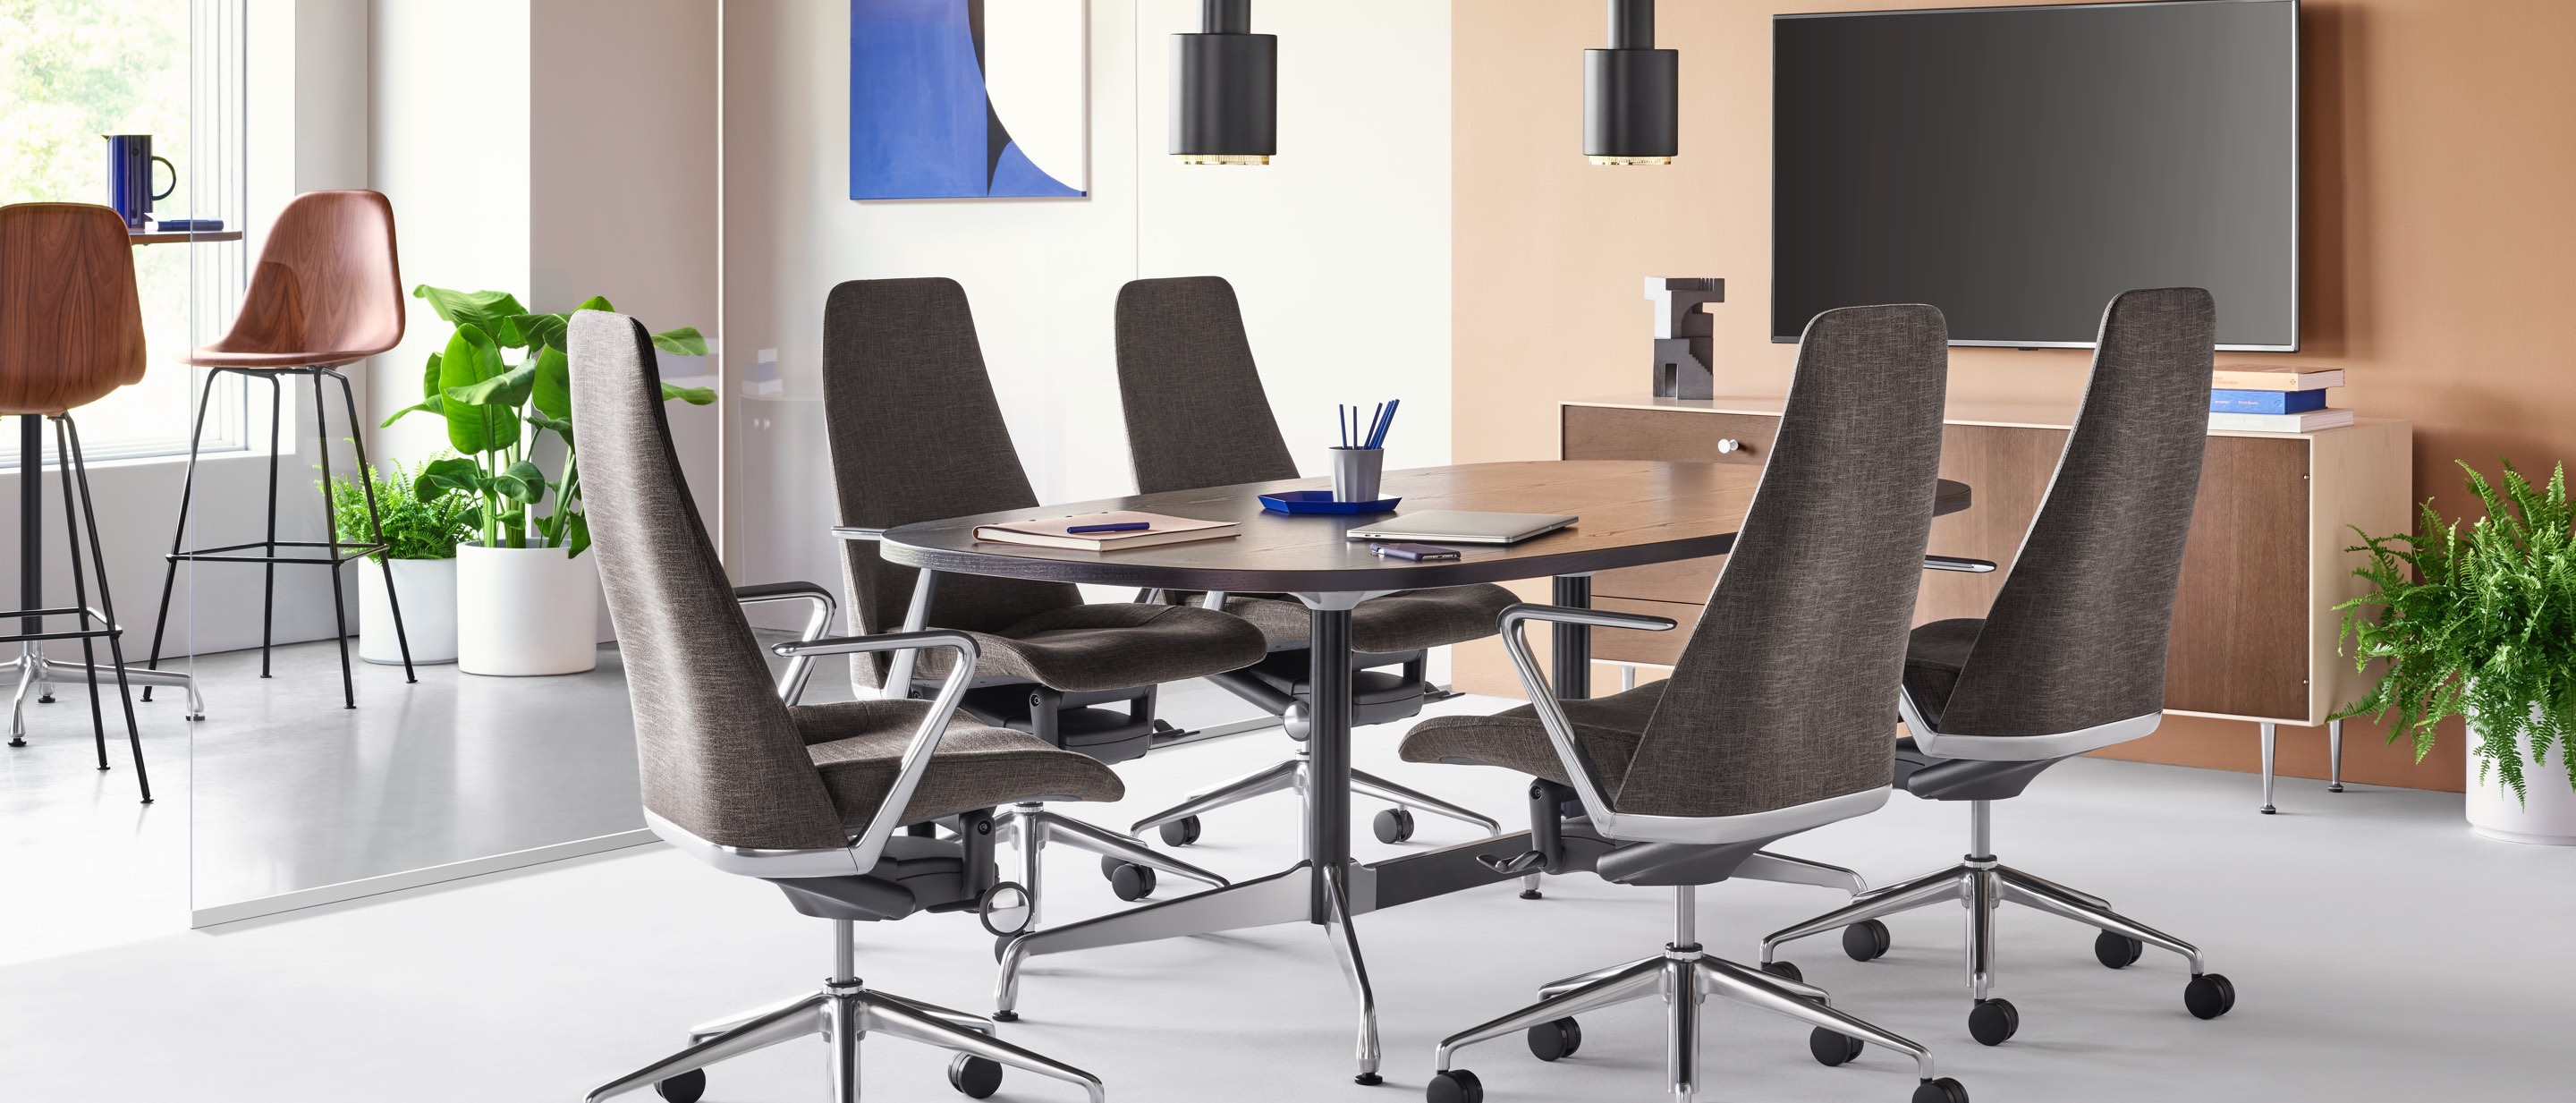 A meeting space setting featuring four black Taper Chairs surrounding an ebony Eames Table. A Nelson Thin Edge Chest sits beneath a TV against the back wall and two Eames Molded Wood Stools cluster around a tall table in the background.